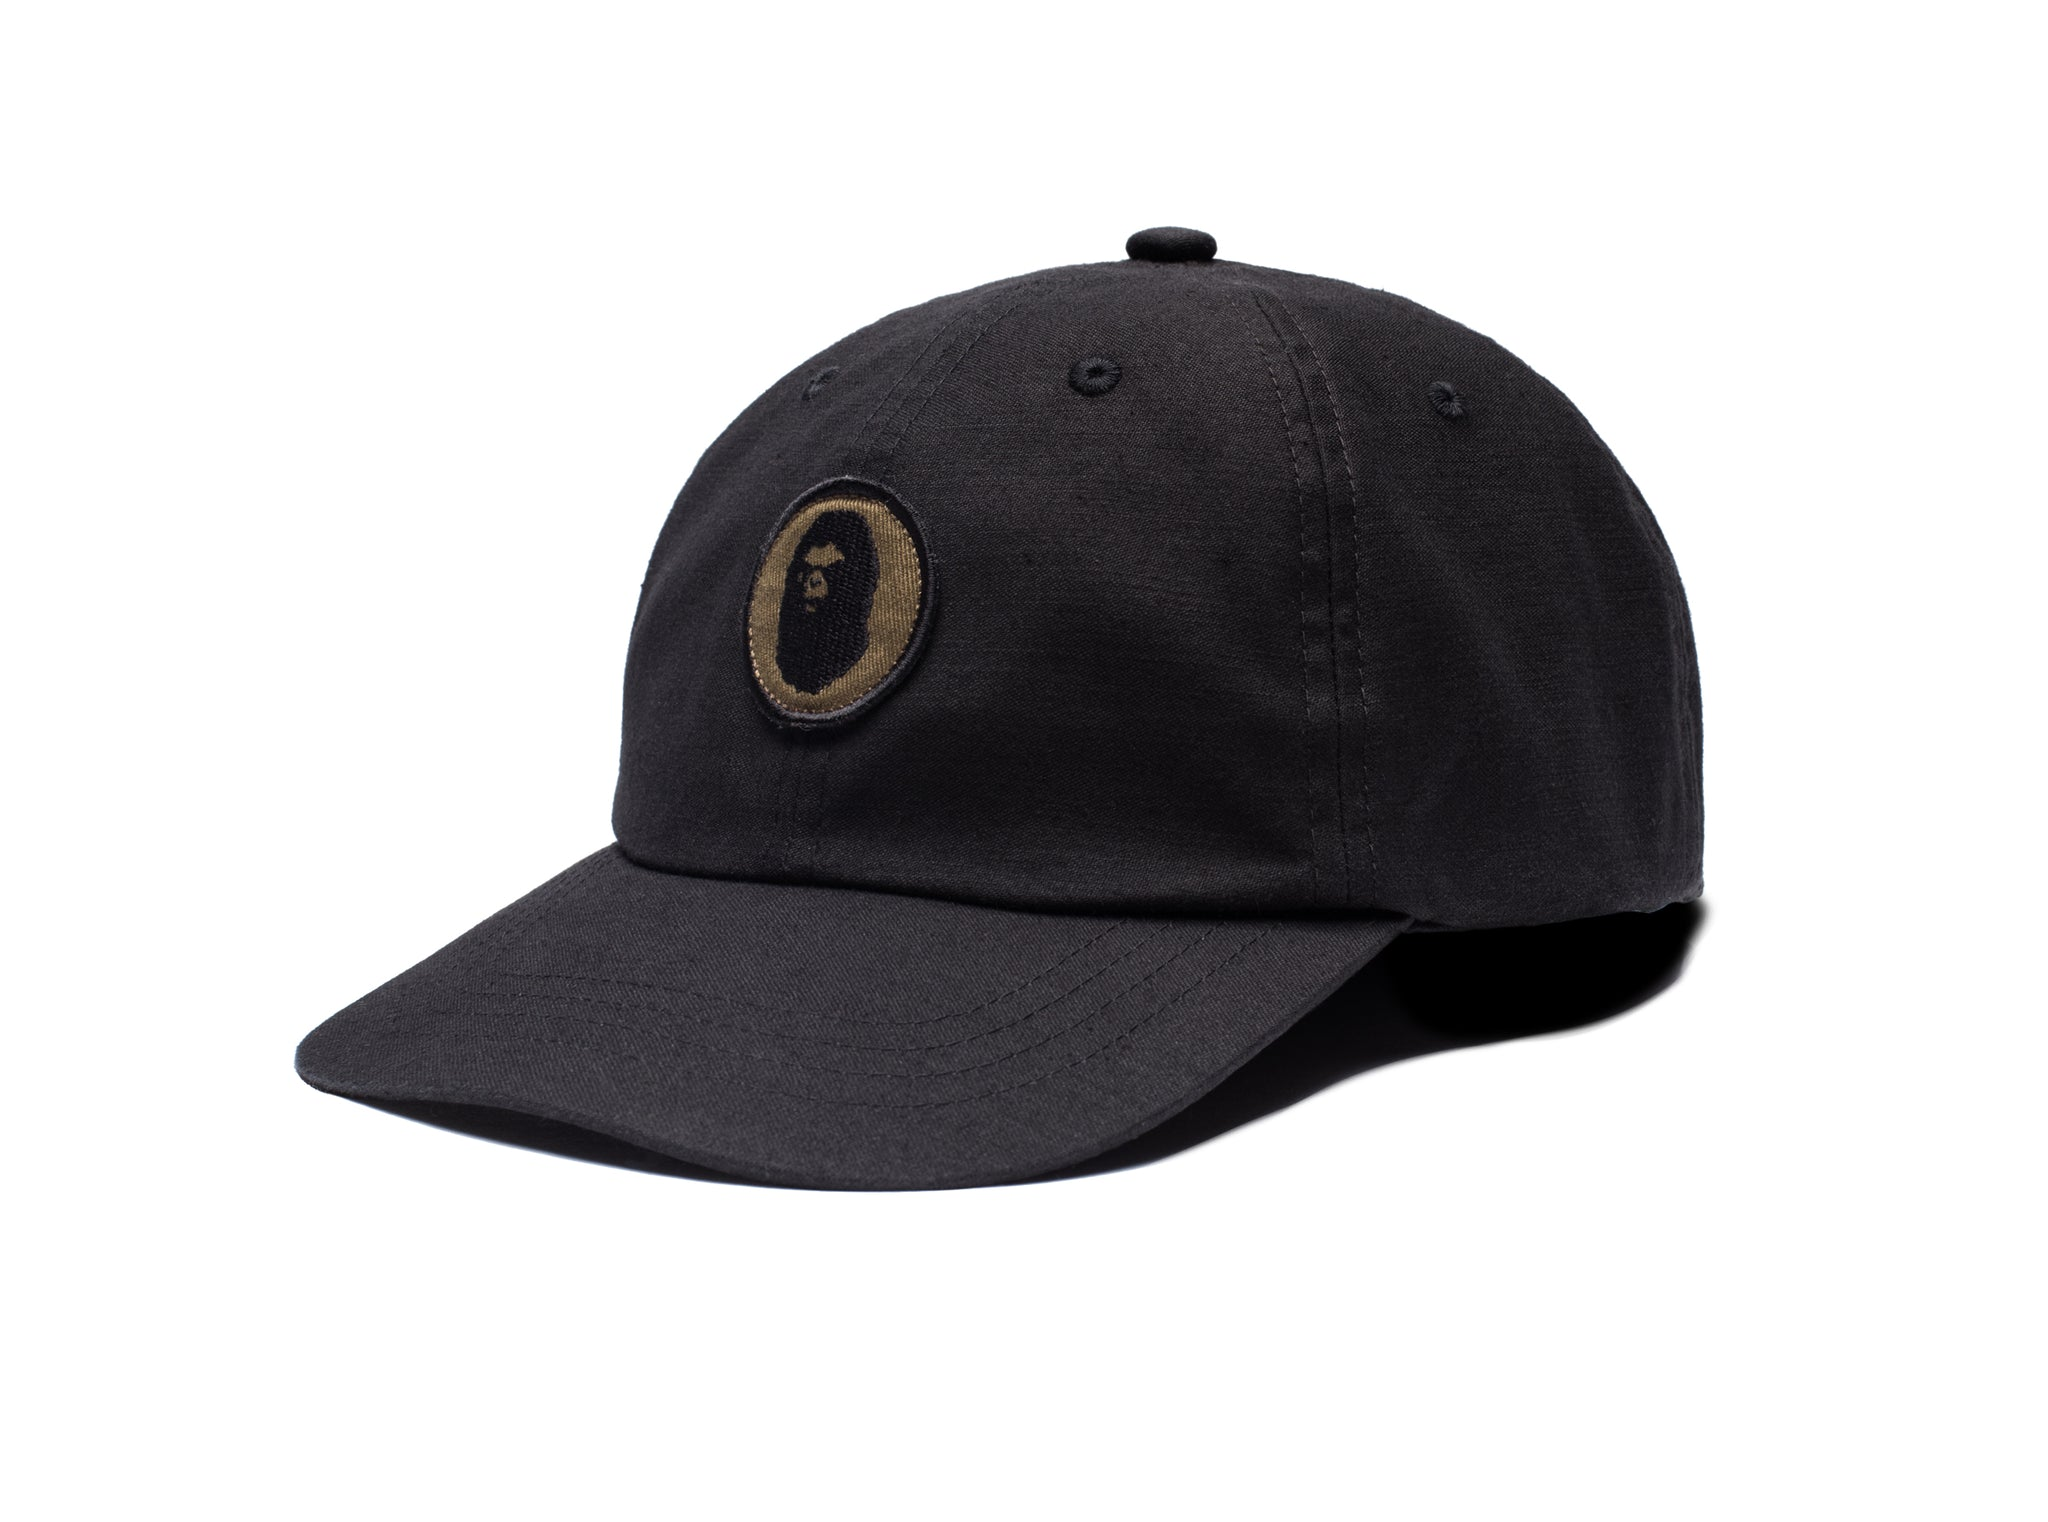 BAPE MILITARY PANEL CAP - BLACK